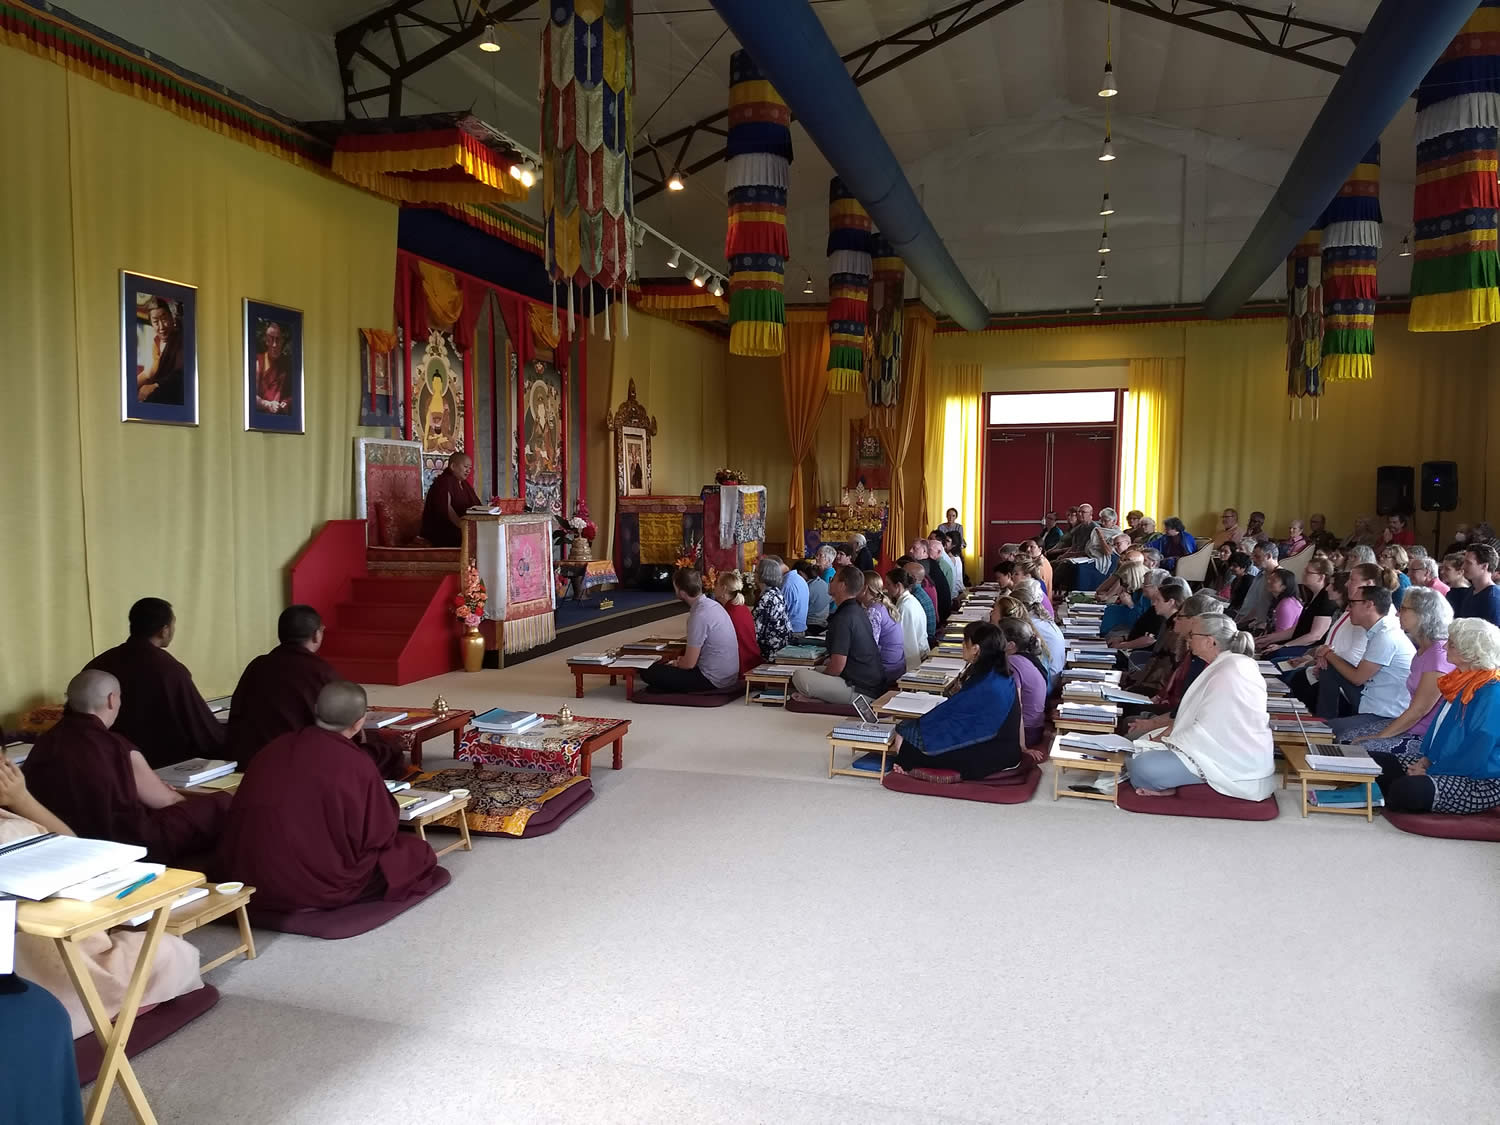 Mindrolling Jetsun Khandro Rinpoche and students during a teaching at Lotus Garden, 2018